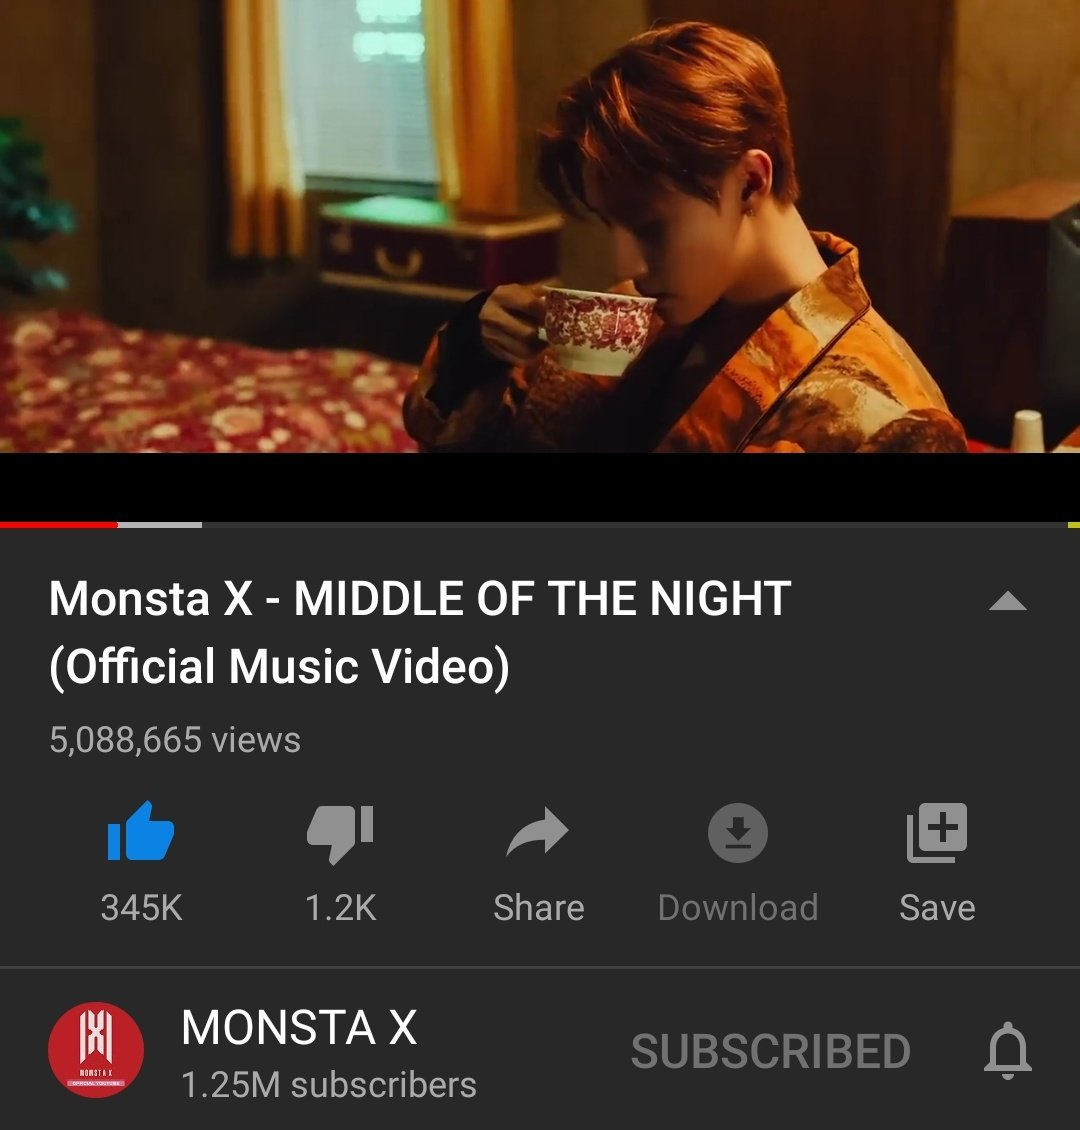 Hey #MONBEBE!  Have u heard? @OfficialMonstaX #MiddleOfTheNight got 5M views in YT now!!! 🥳🎉✨ We're doin' a great job! Let's keep the ball rollin'!!!  @Epic_Records #AllAboutLuv #AllAboutLuvOutNow #MONSTAX